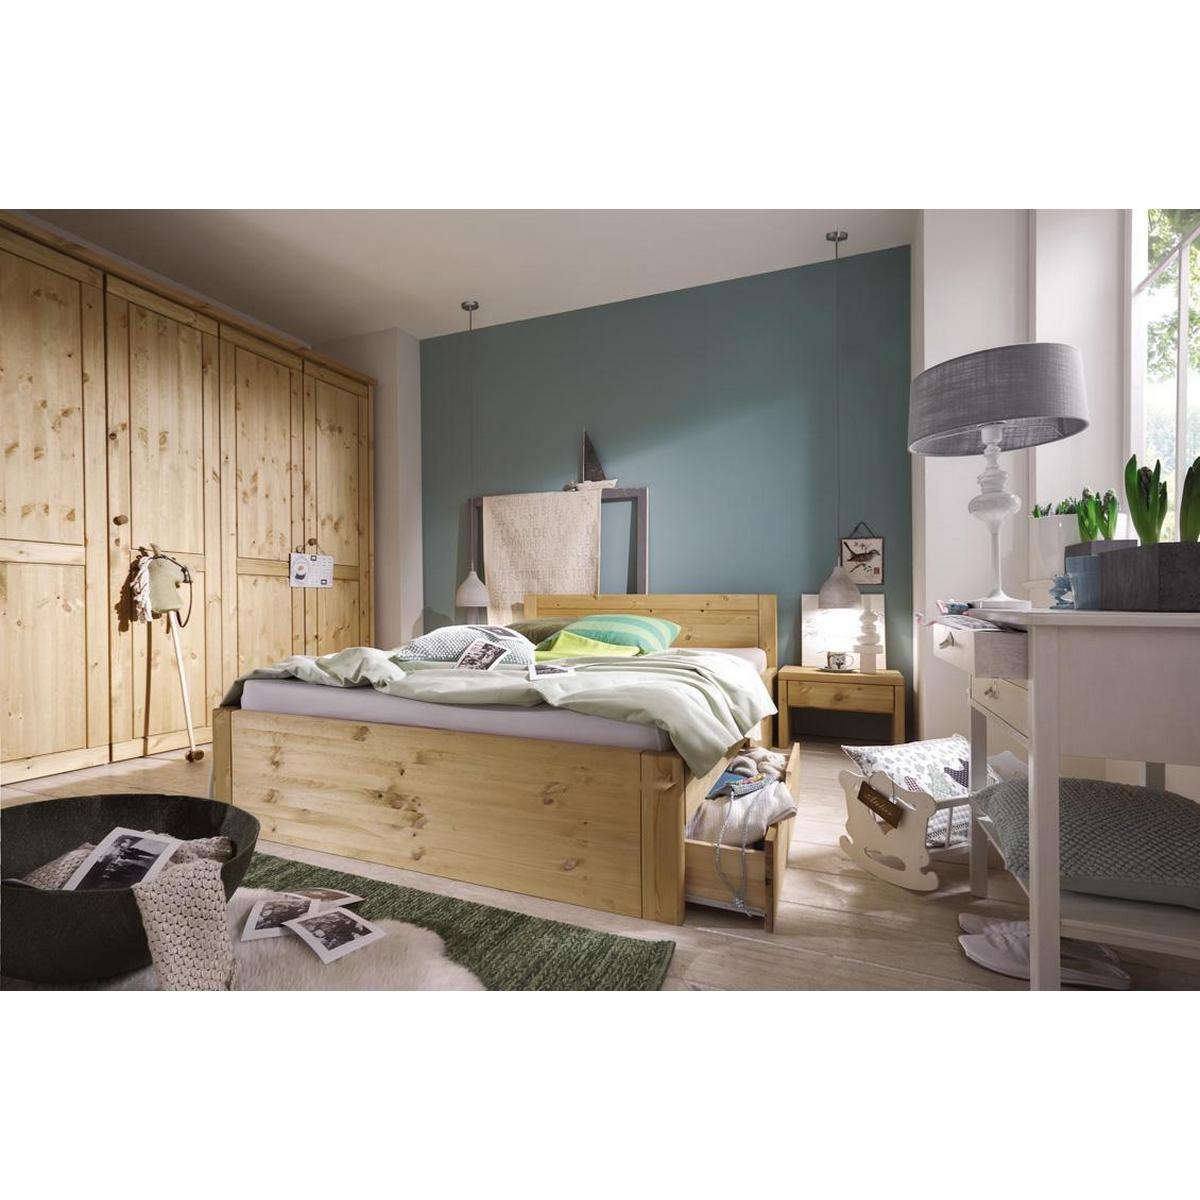 vollholz schubladenbett schubkastenbett funktionsbett 100x200 rauna xl kiefer massiv gebeizt ge lt. Black Bedroom Furniture Sets. Home Design Ideas